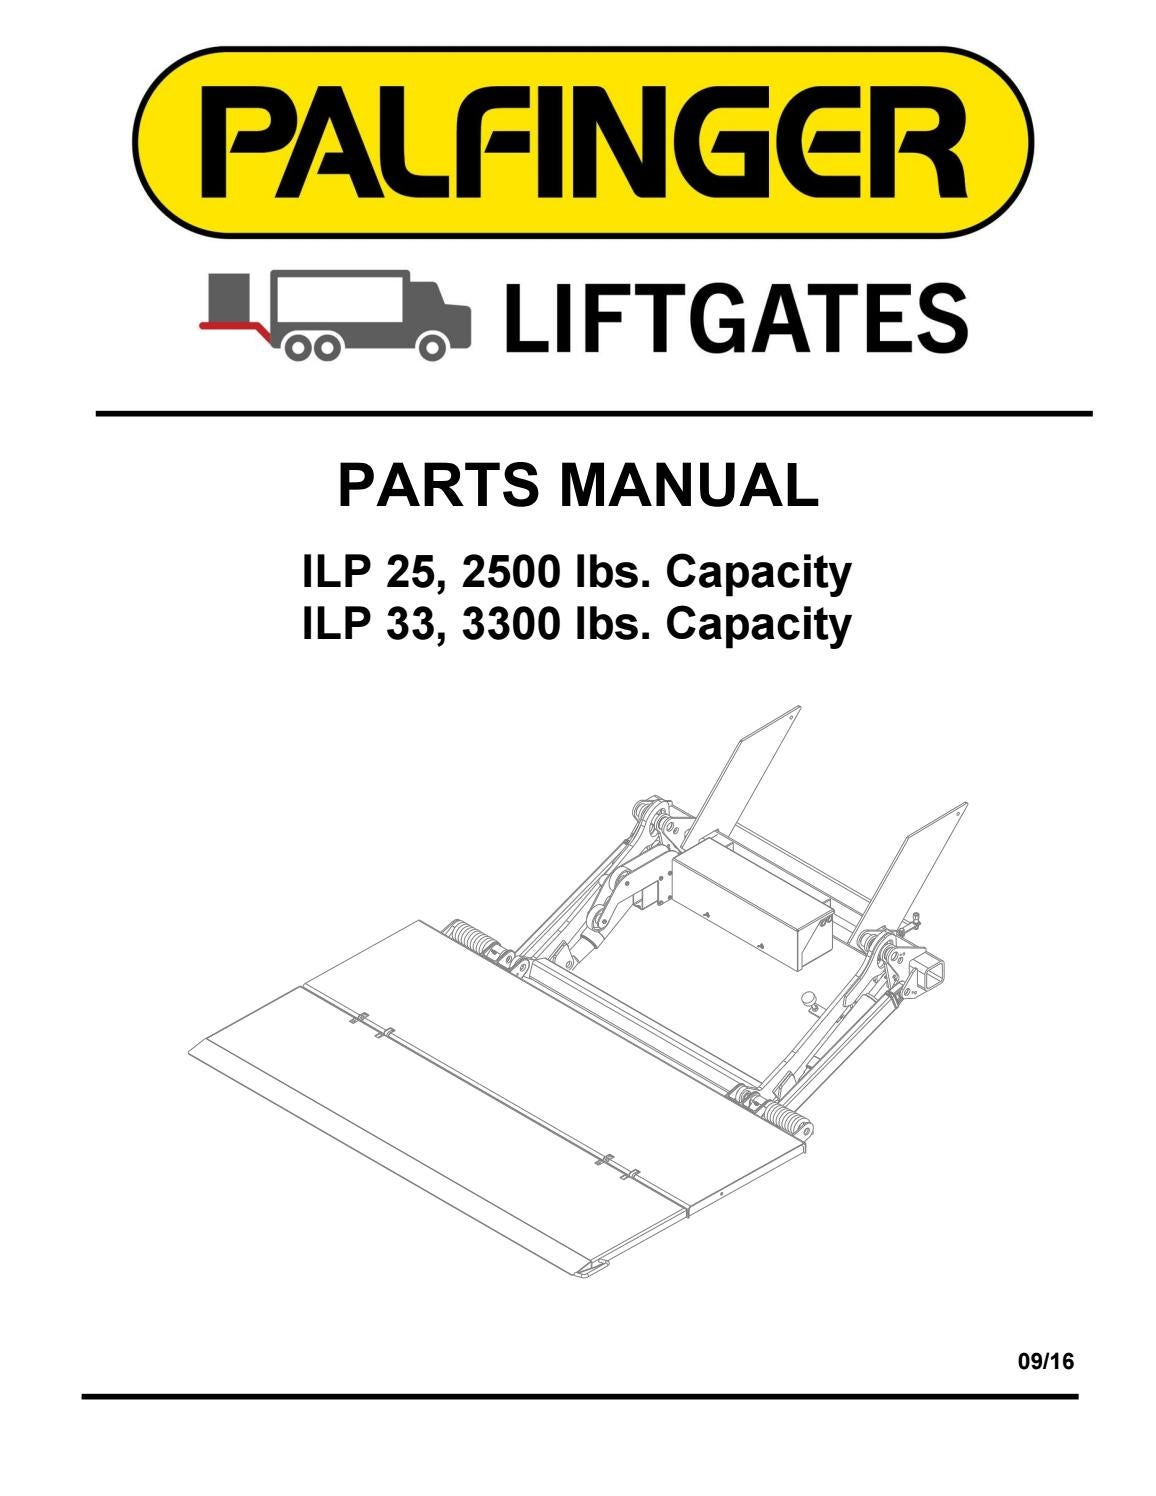 Palfinger Ilp Liftgate Parts Manual By The Liftgate Parts Co